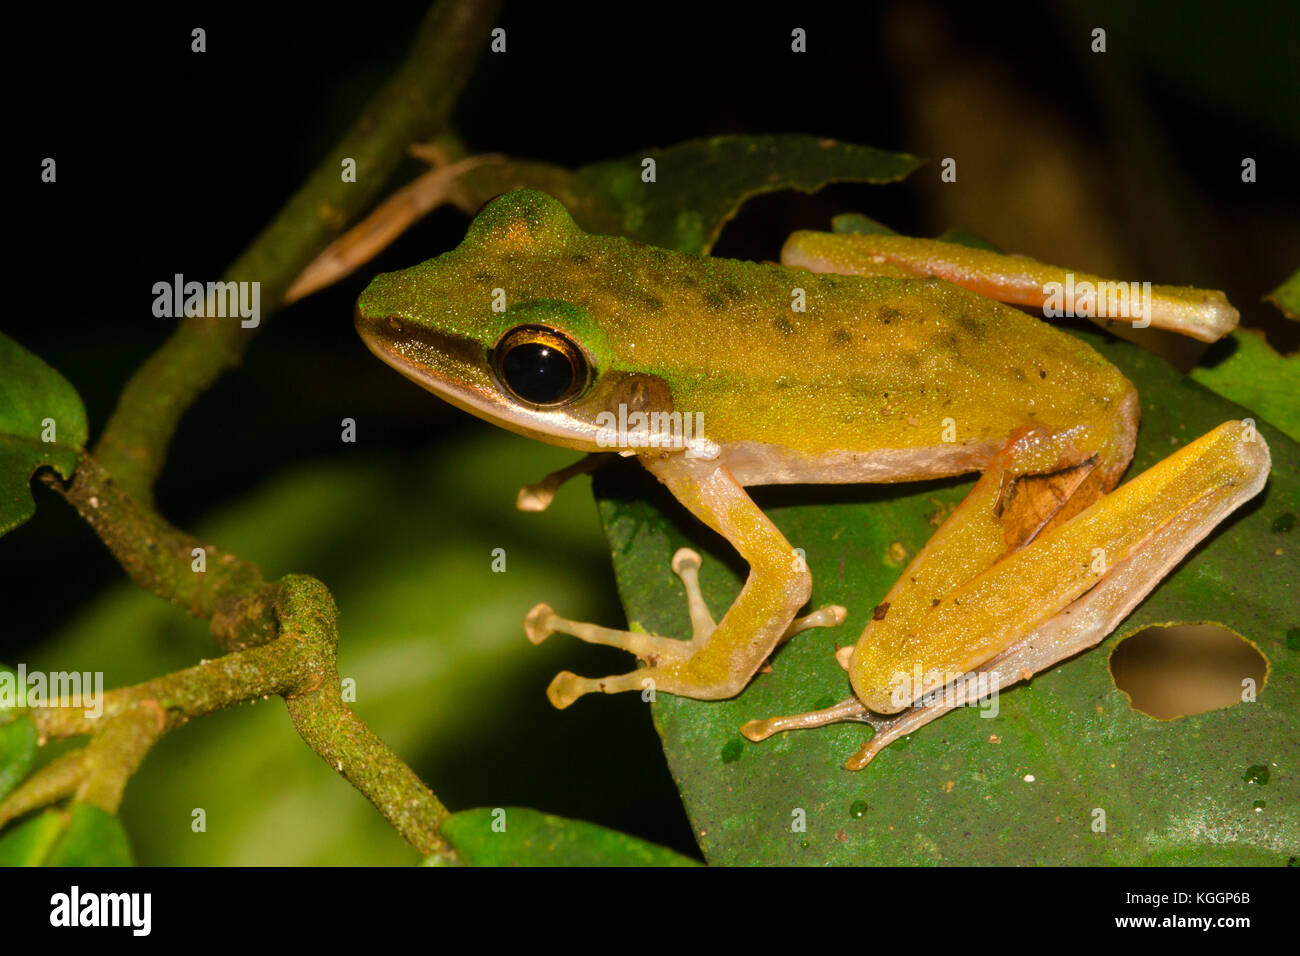 Large White-Lipped Frog, Chalcorana (Hylarana) megalonesa, is small frog from the family Ranidae, living in rainforests - Stock Image